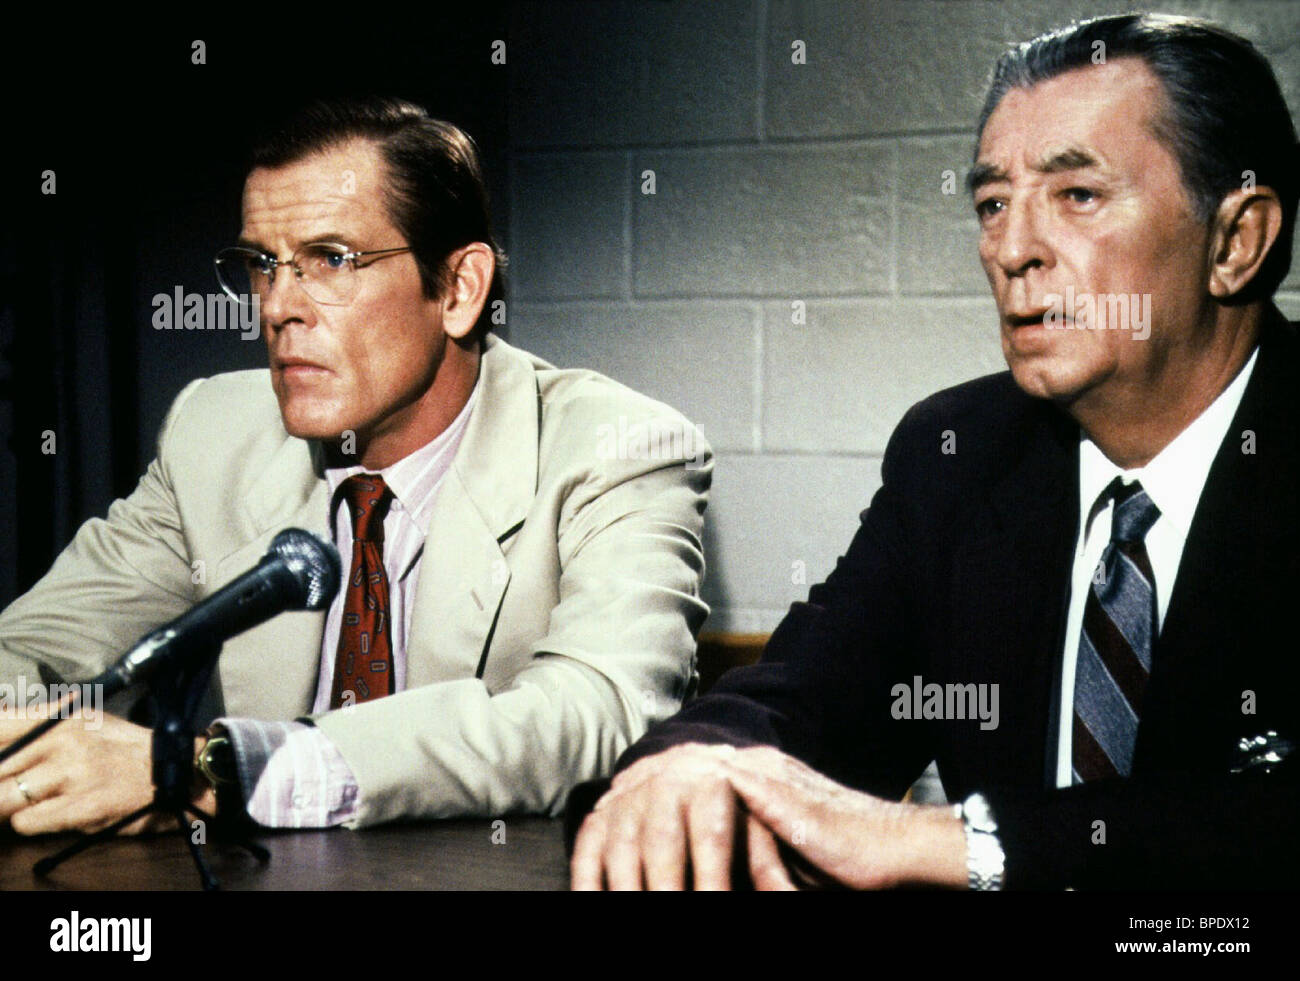 Cape Fear Nick Nolte High Resolution Stock Photography And Images Alamy